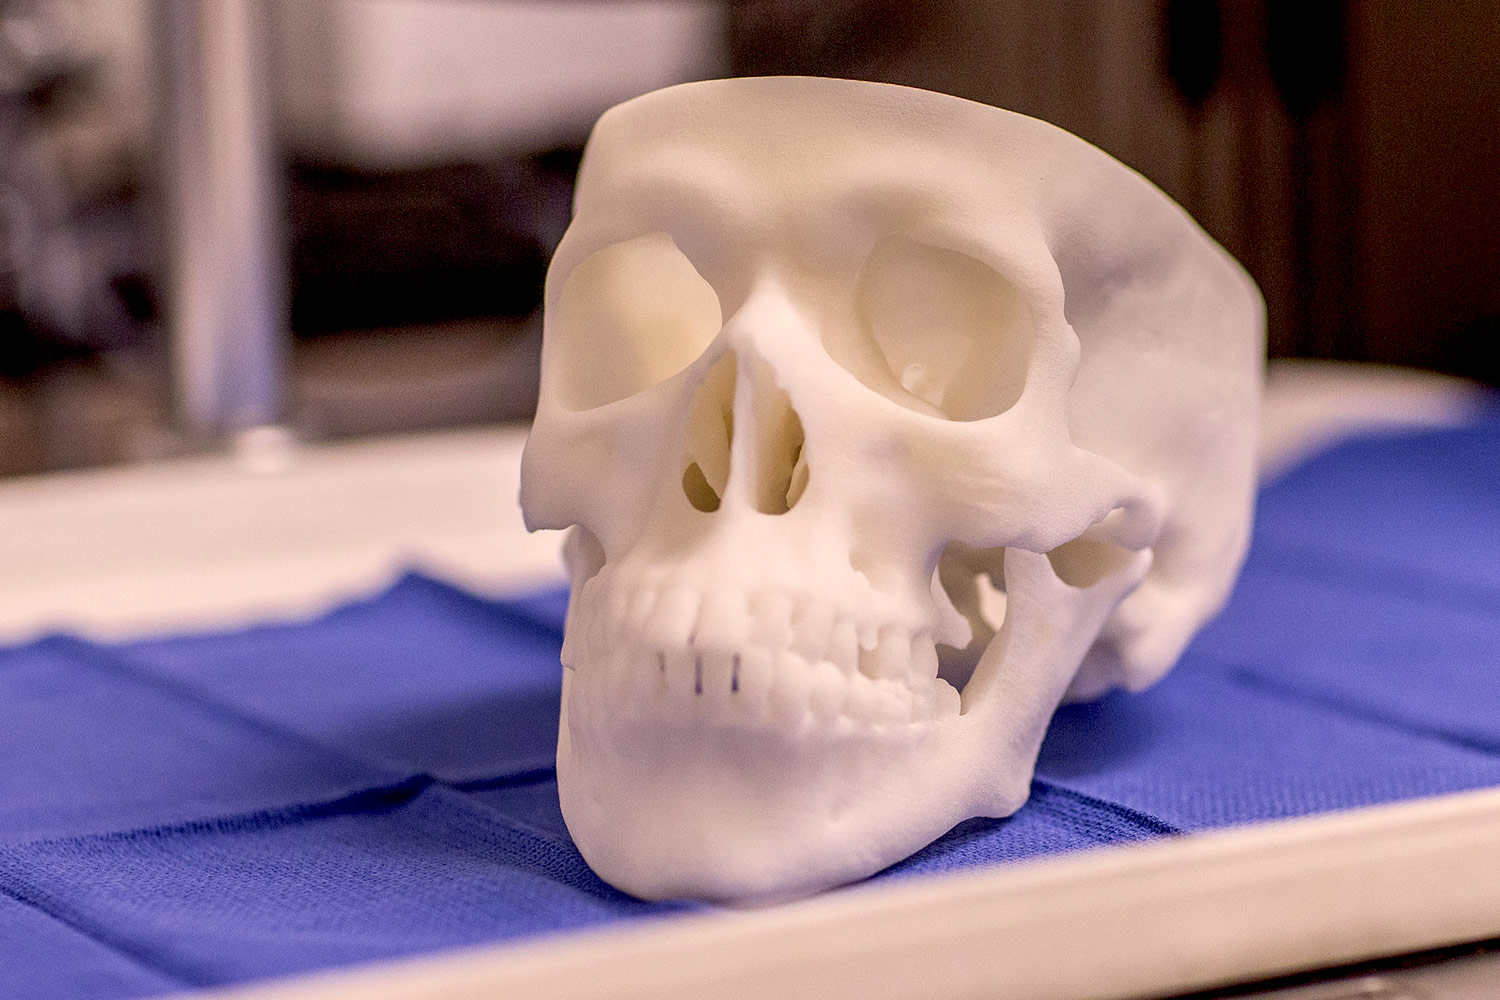 Patient CT or MRI scans are converted to 3-D printable files to create the 3-D printed skull models.